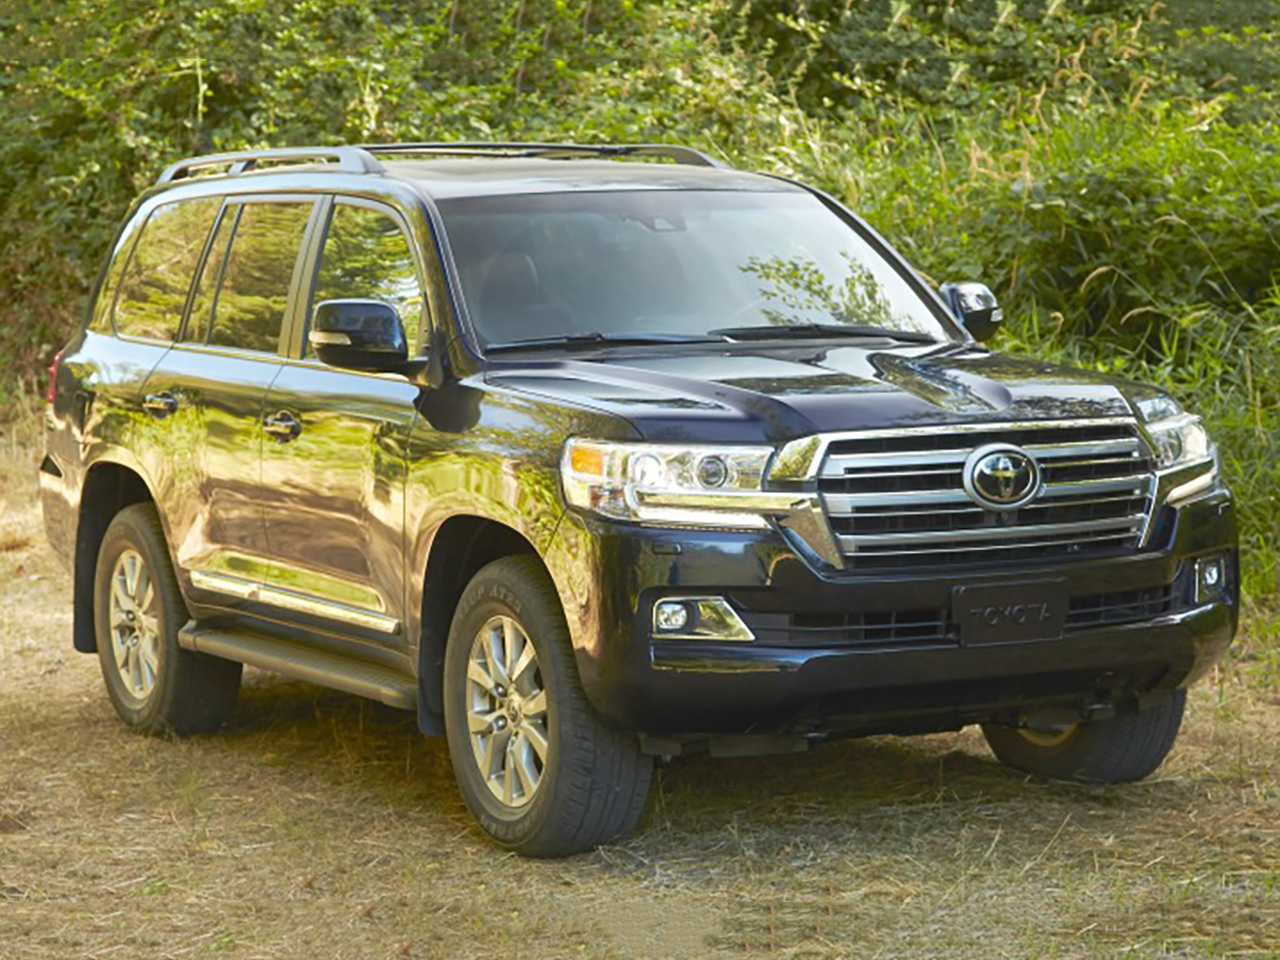 Test Drive A 2016 Toyota Land Cruiser at Toyota of Glendale in Los Angeles